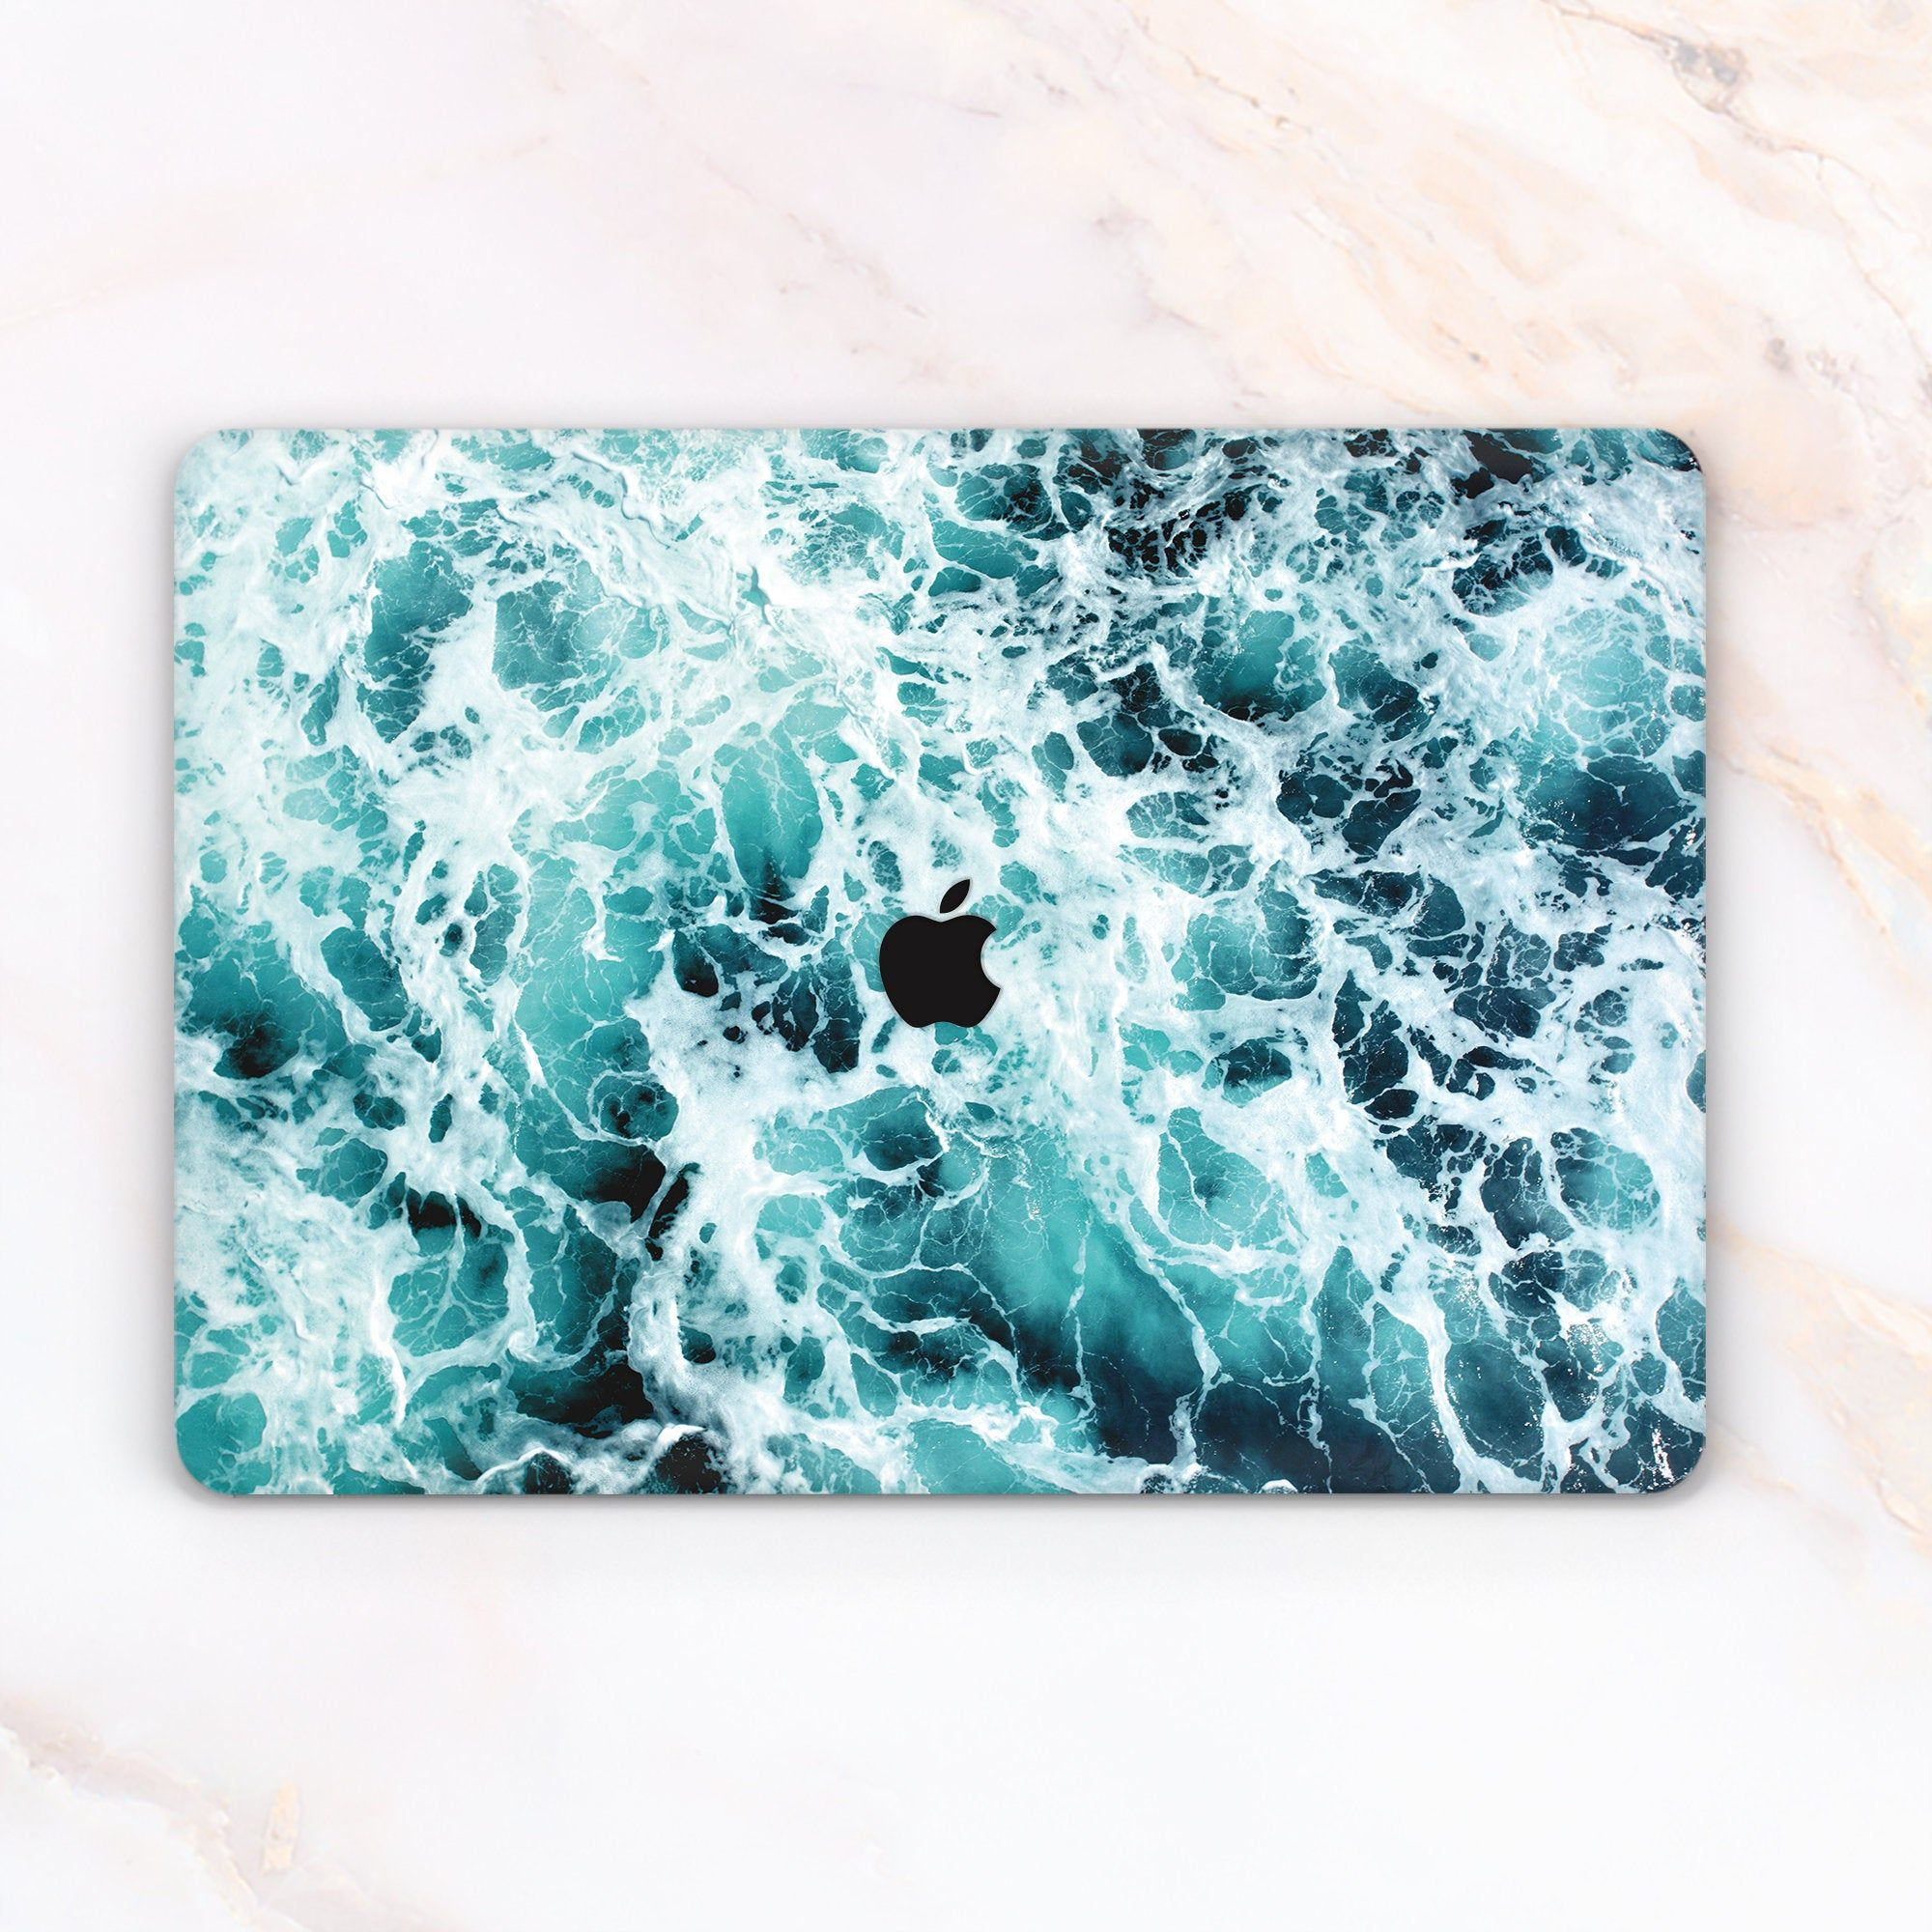 Ocean Splash Macbook Case Air 13 Mac Book Pro 13 2016 Case Sea | Etsy